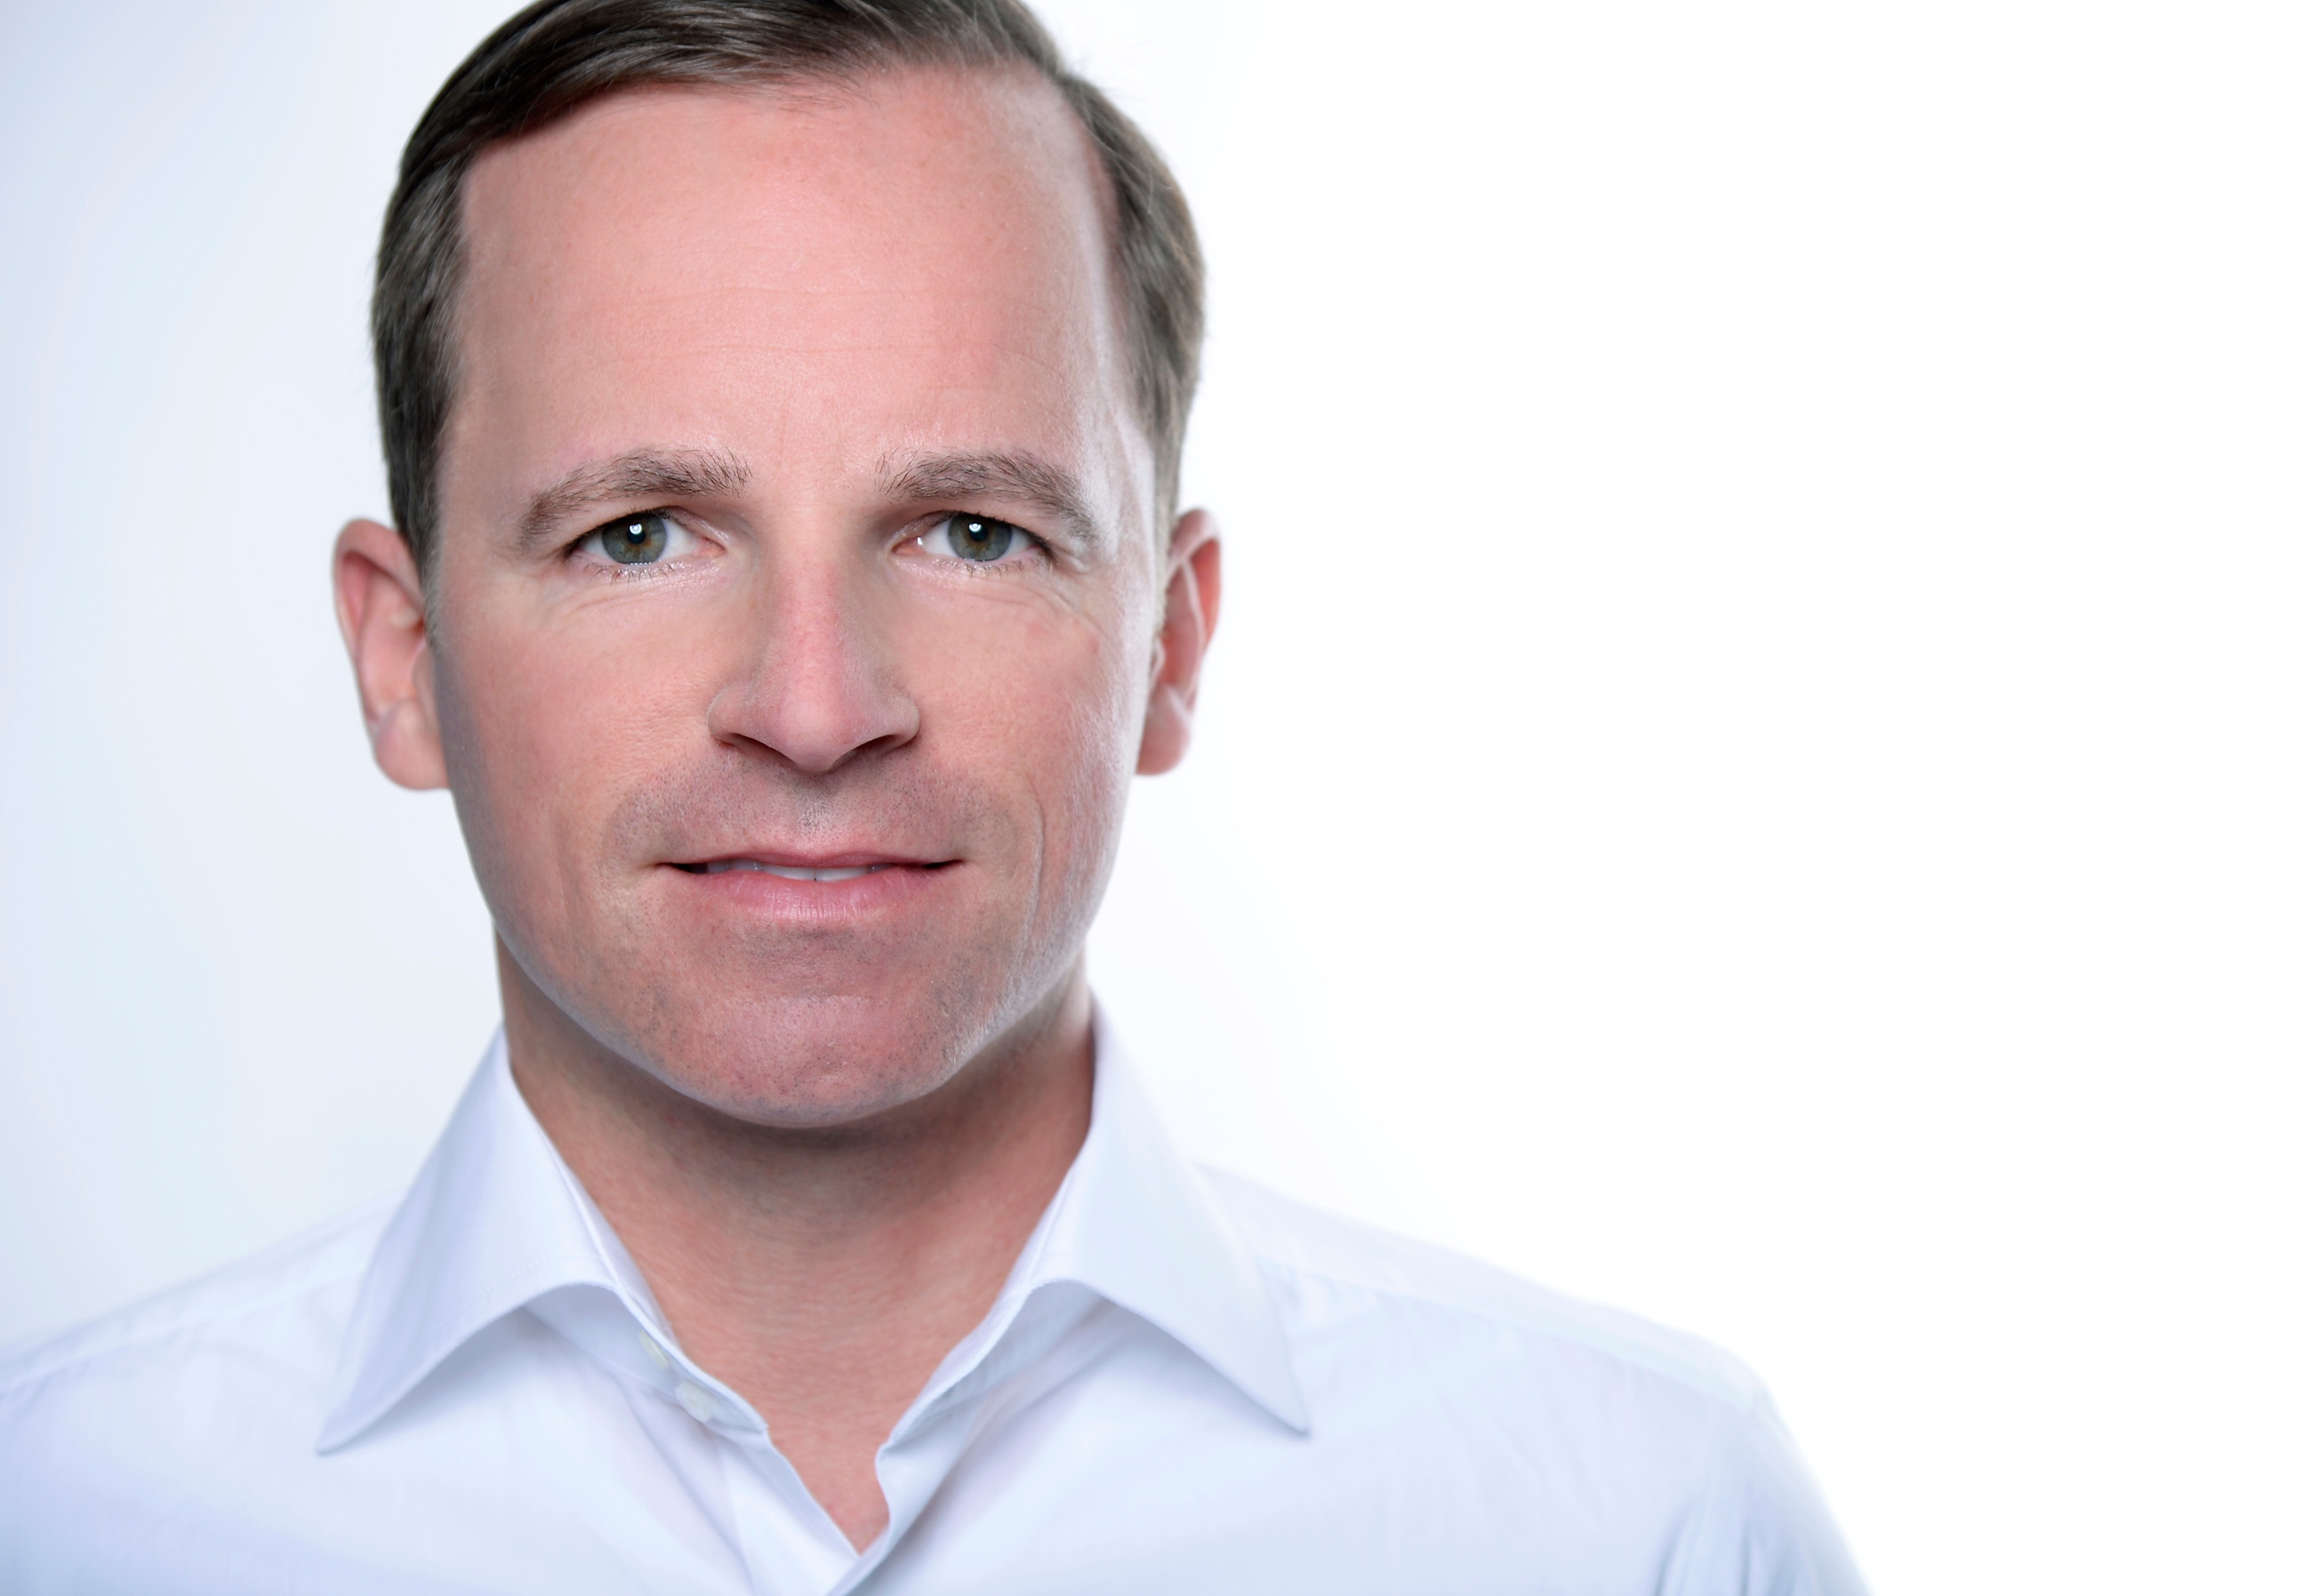 Tim Hoffmeister to become CEO of Implico Group - Featured Image